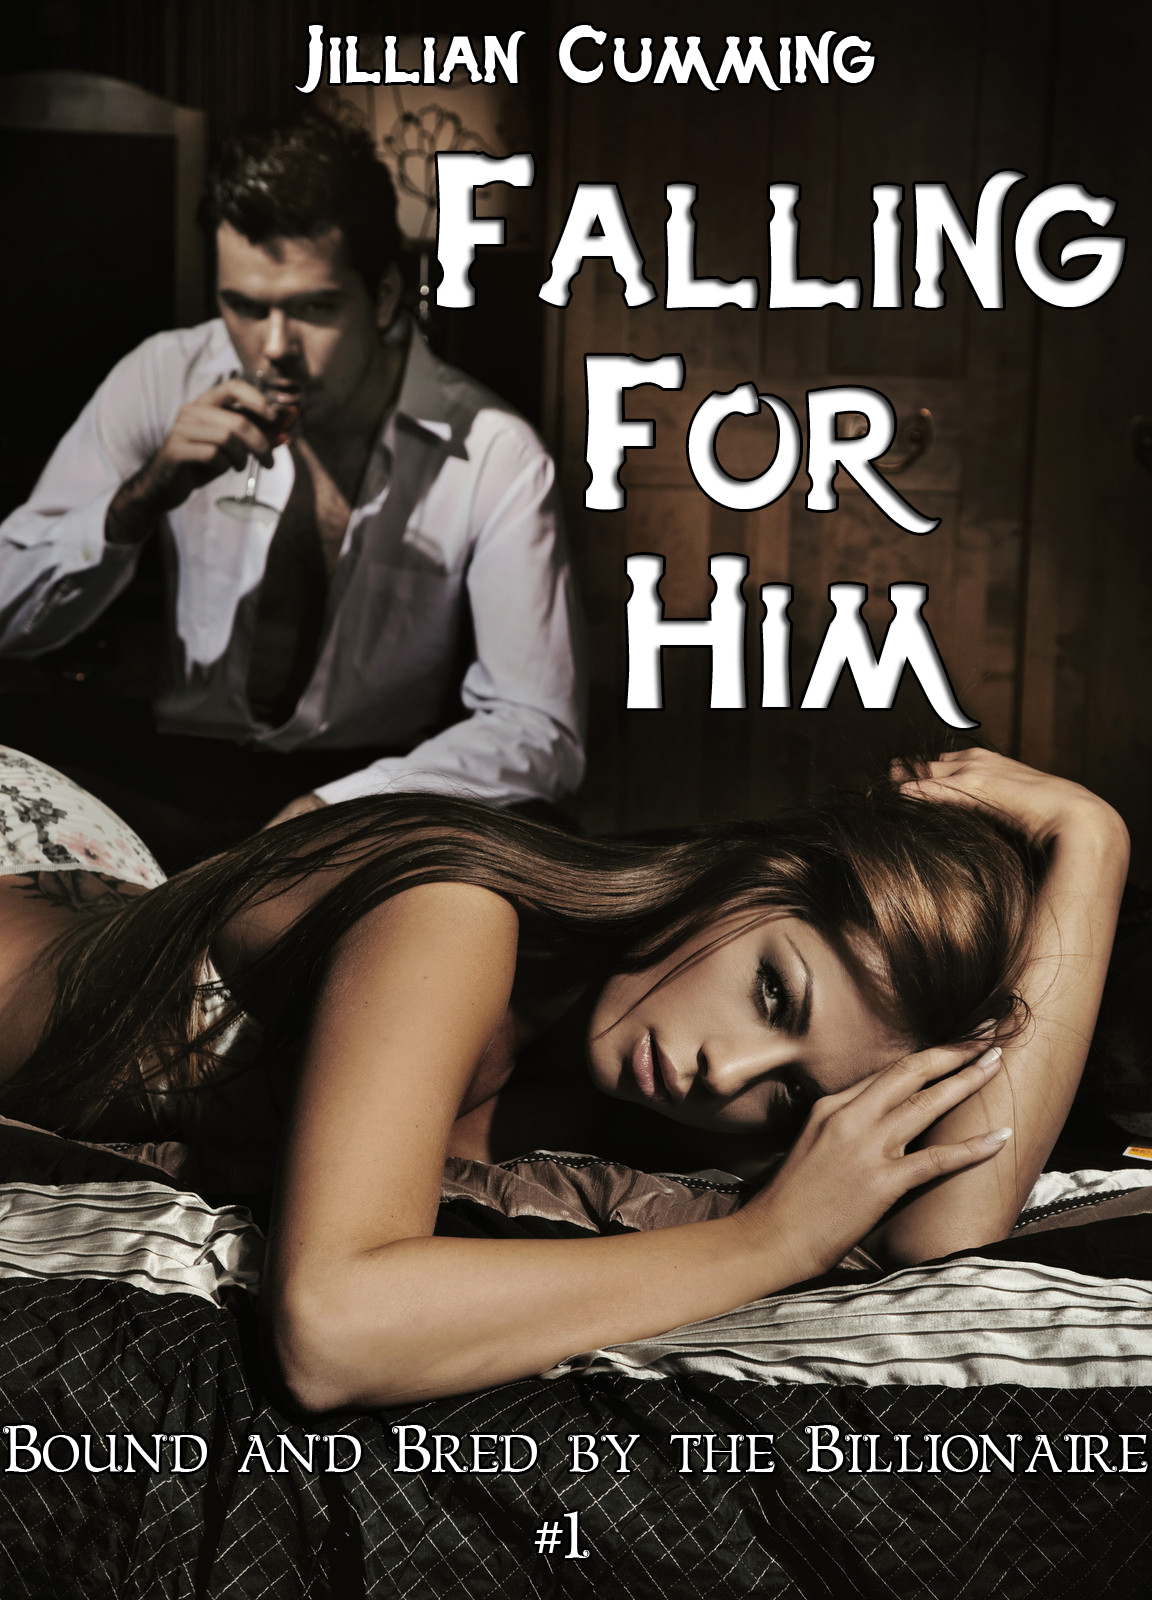 Jillian Cumming - Falling For Him: Bound and Bred by the Billionaire #1